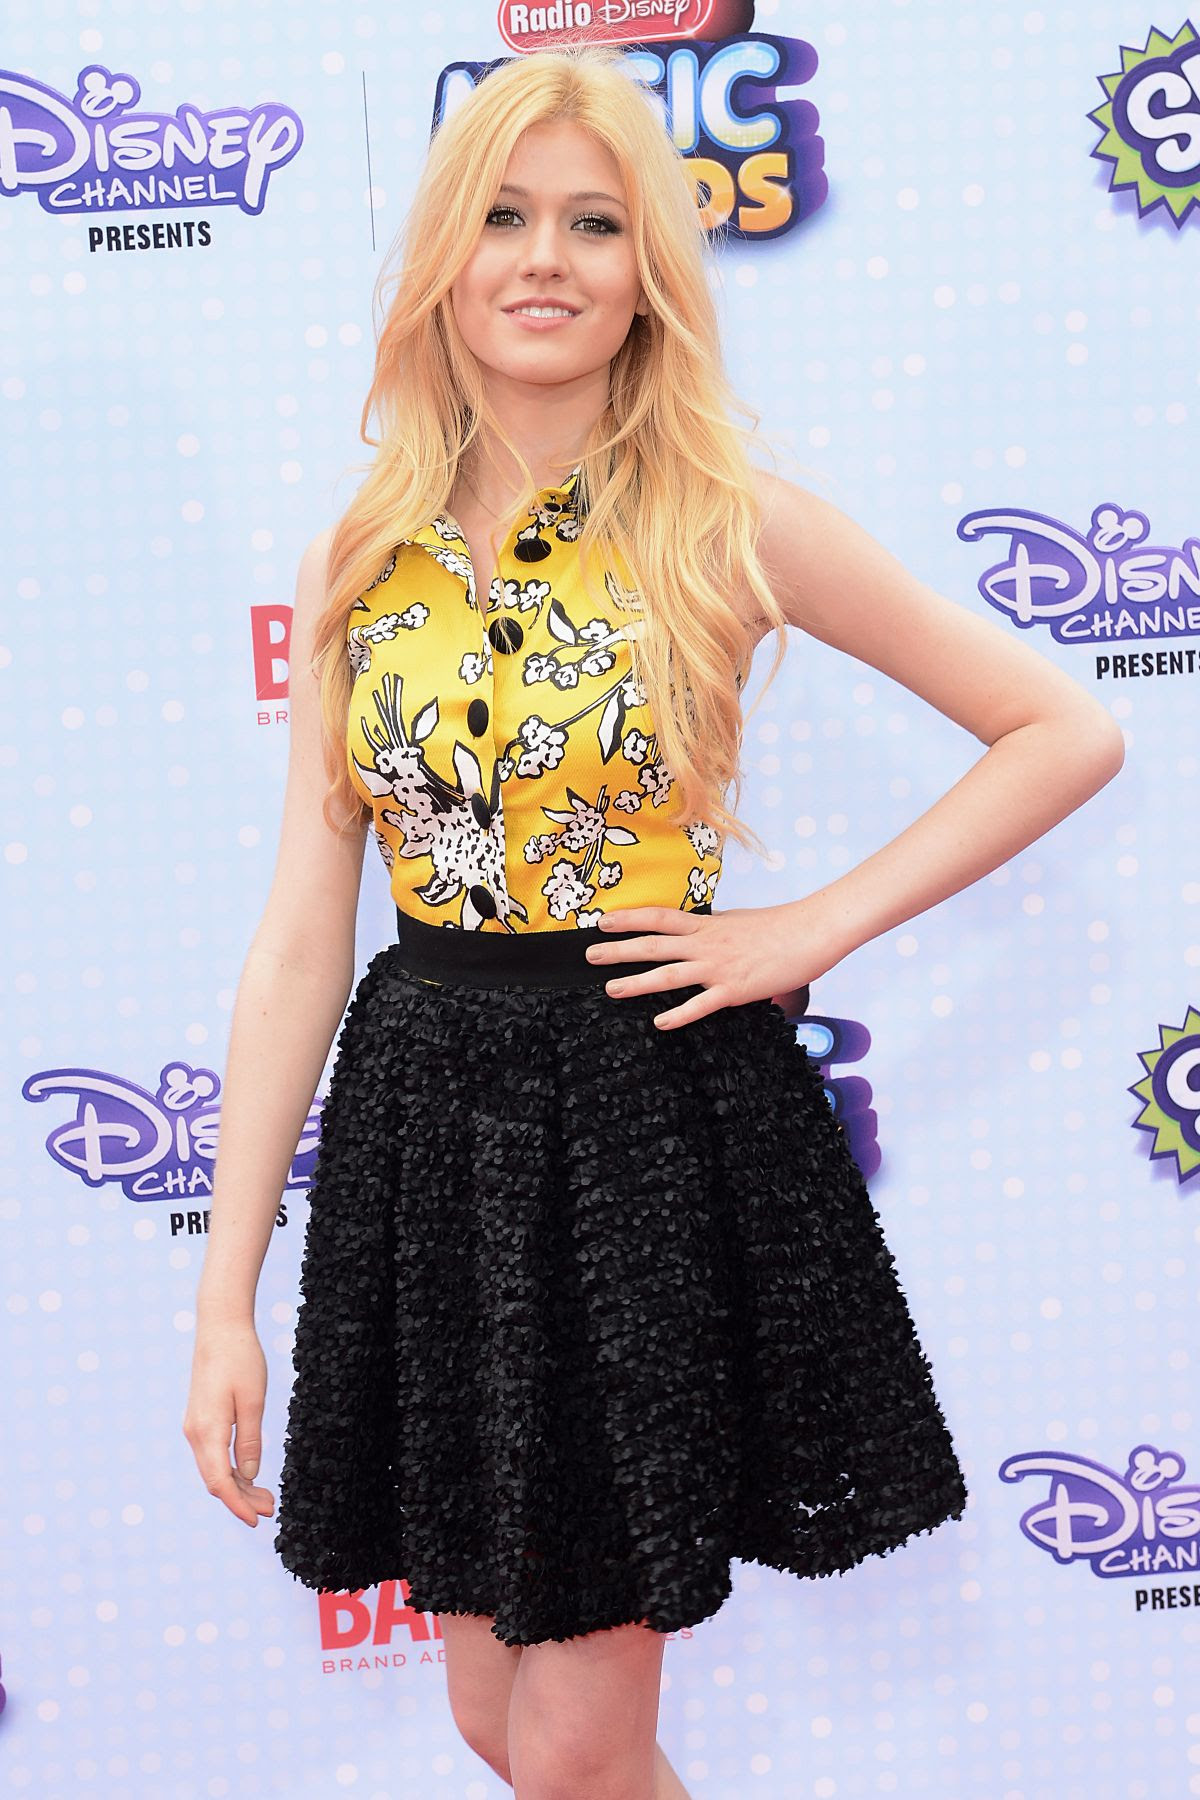 KATHERINE MCNAMARA at 2015 Radio Disney Music Awards in Los Angeles